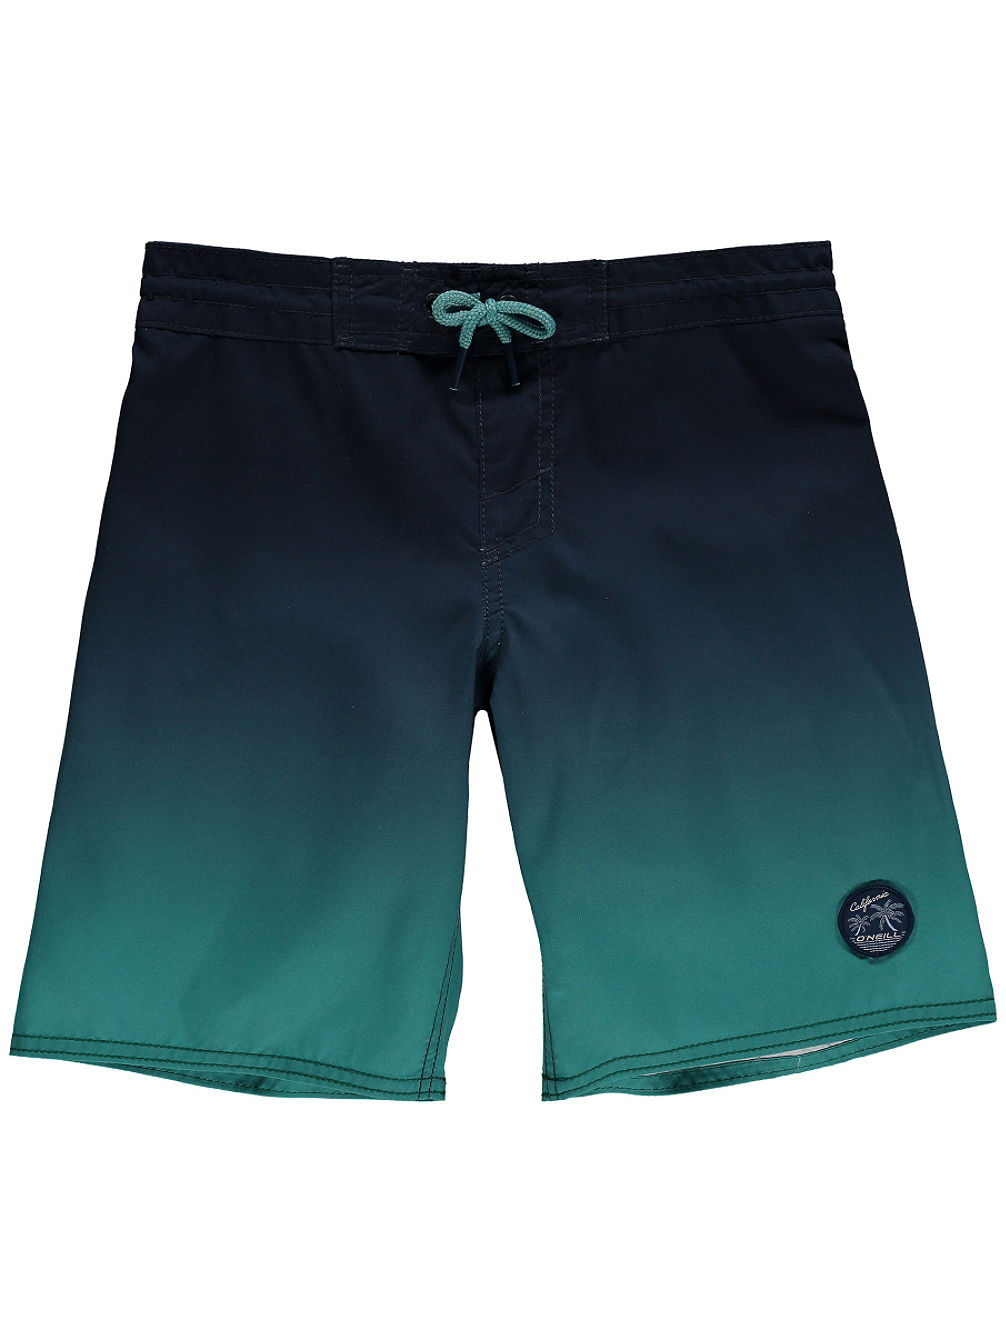 Sunset Cruz Boardshorts Boys